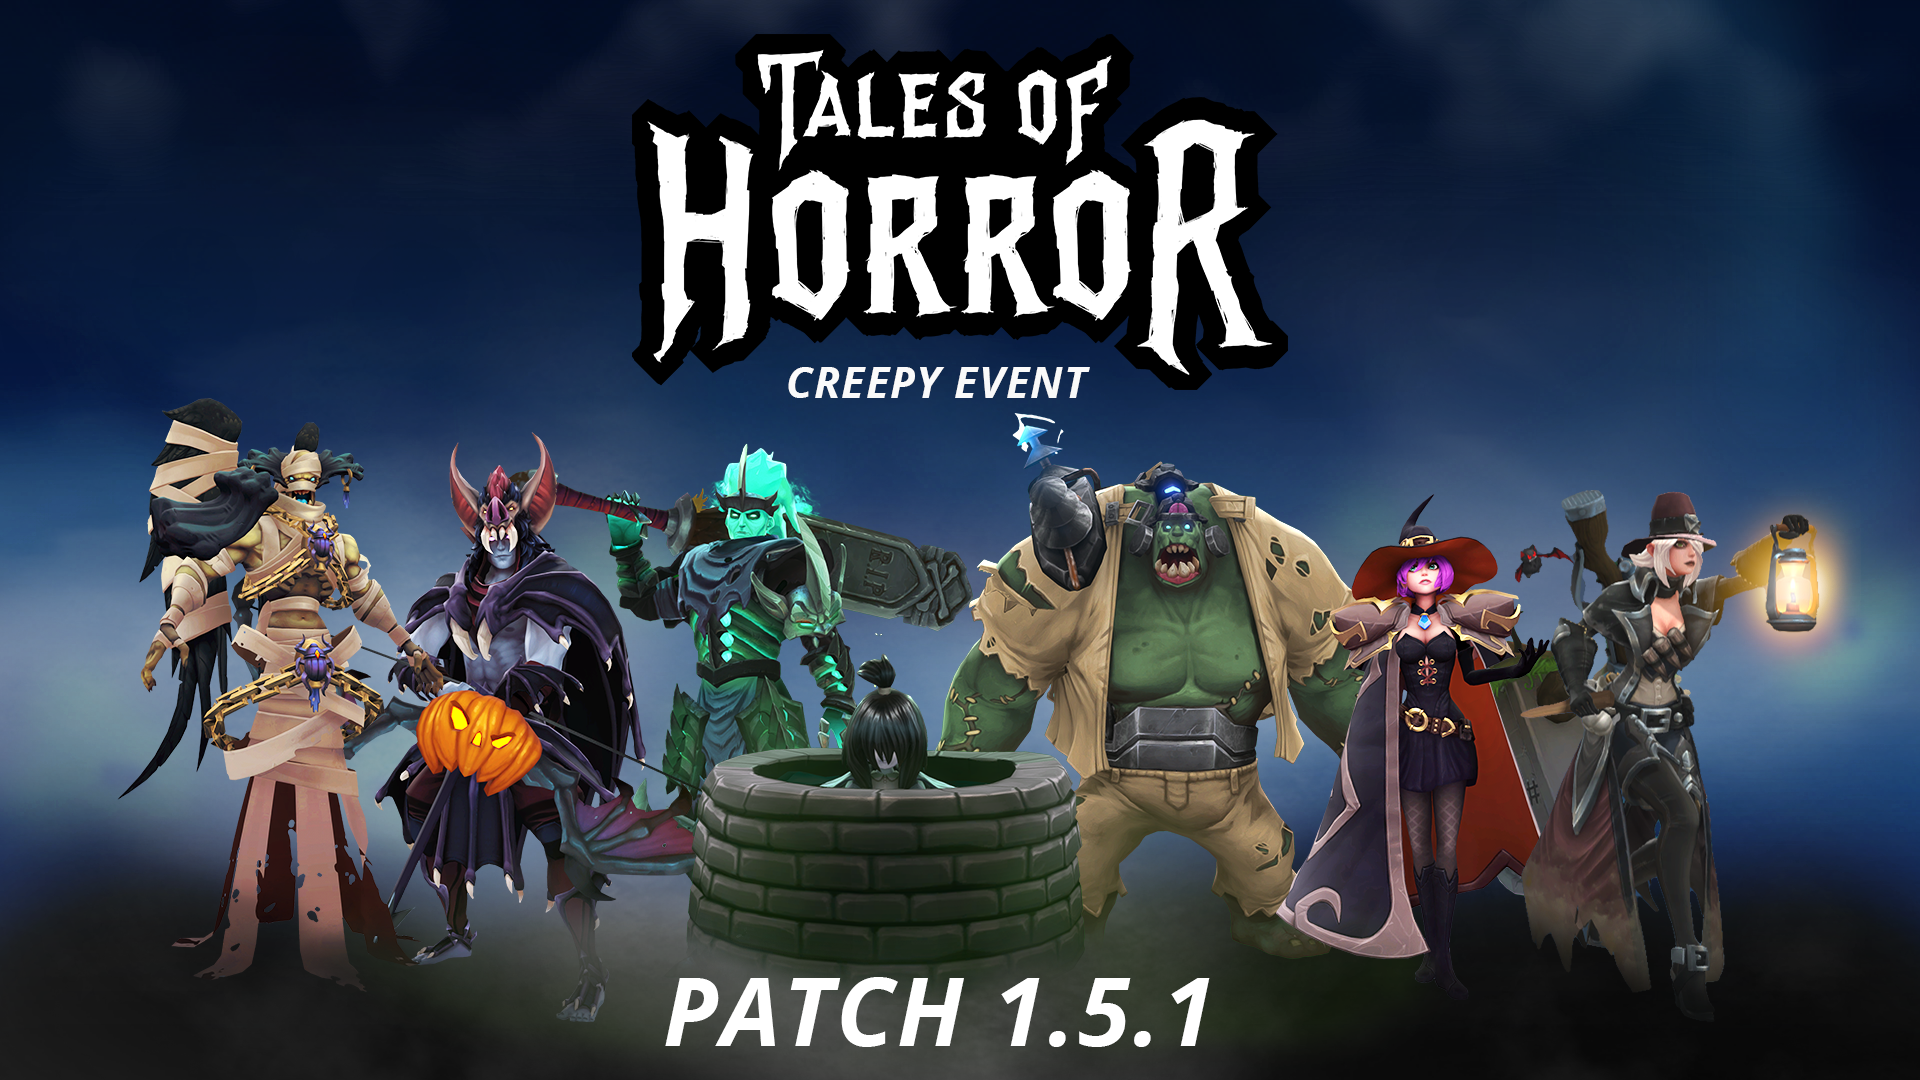 tales_of_horror_patch-notes-banner-1_5_1.png